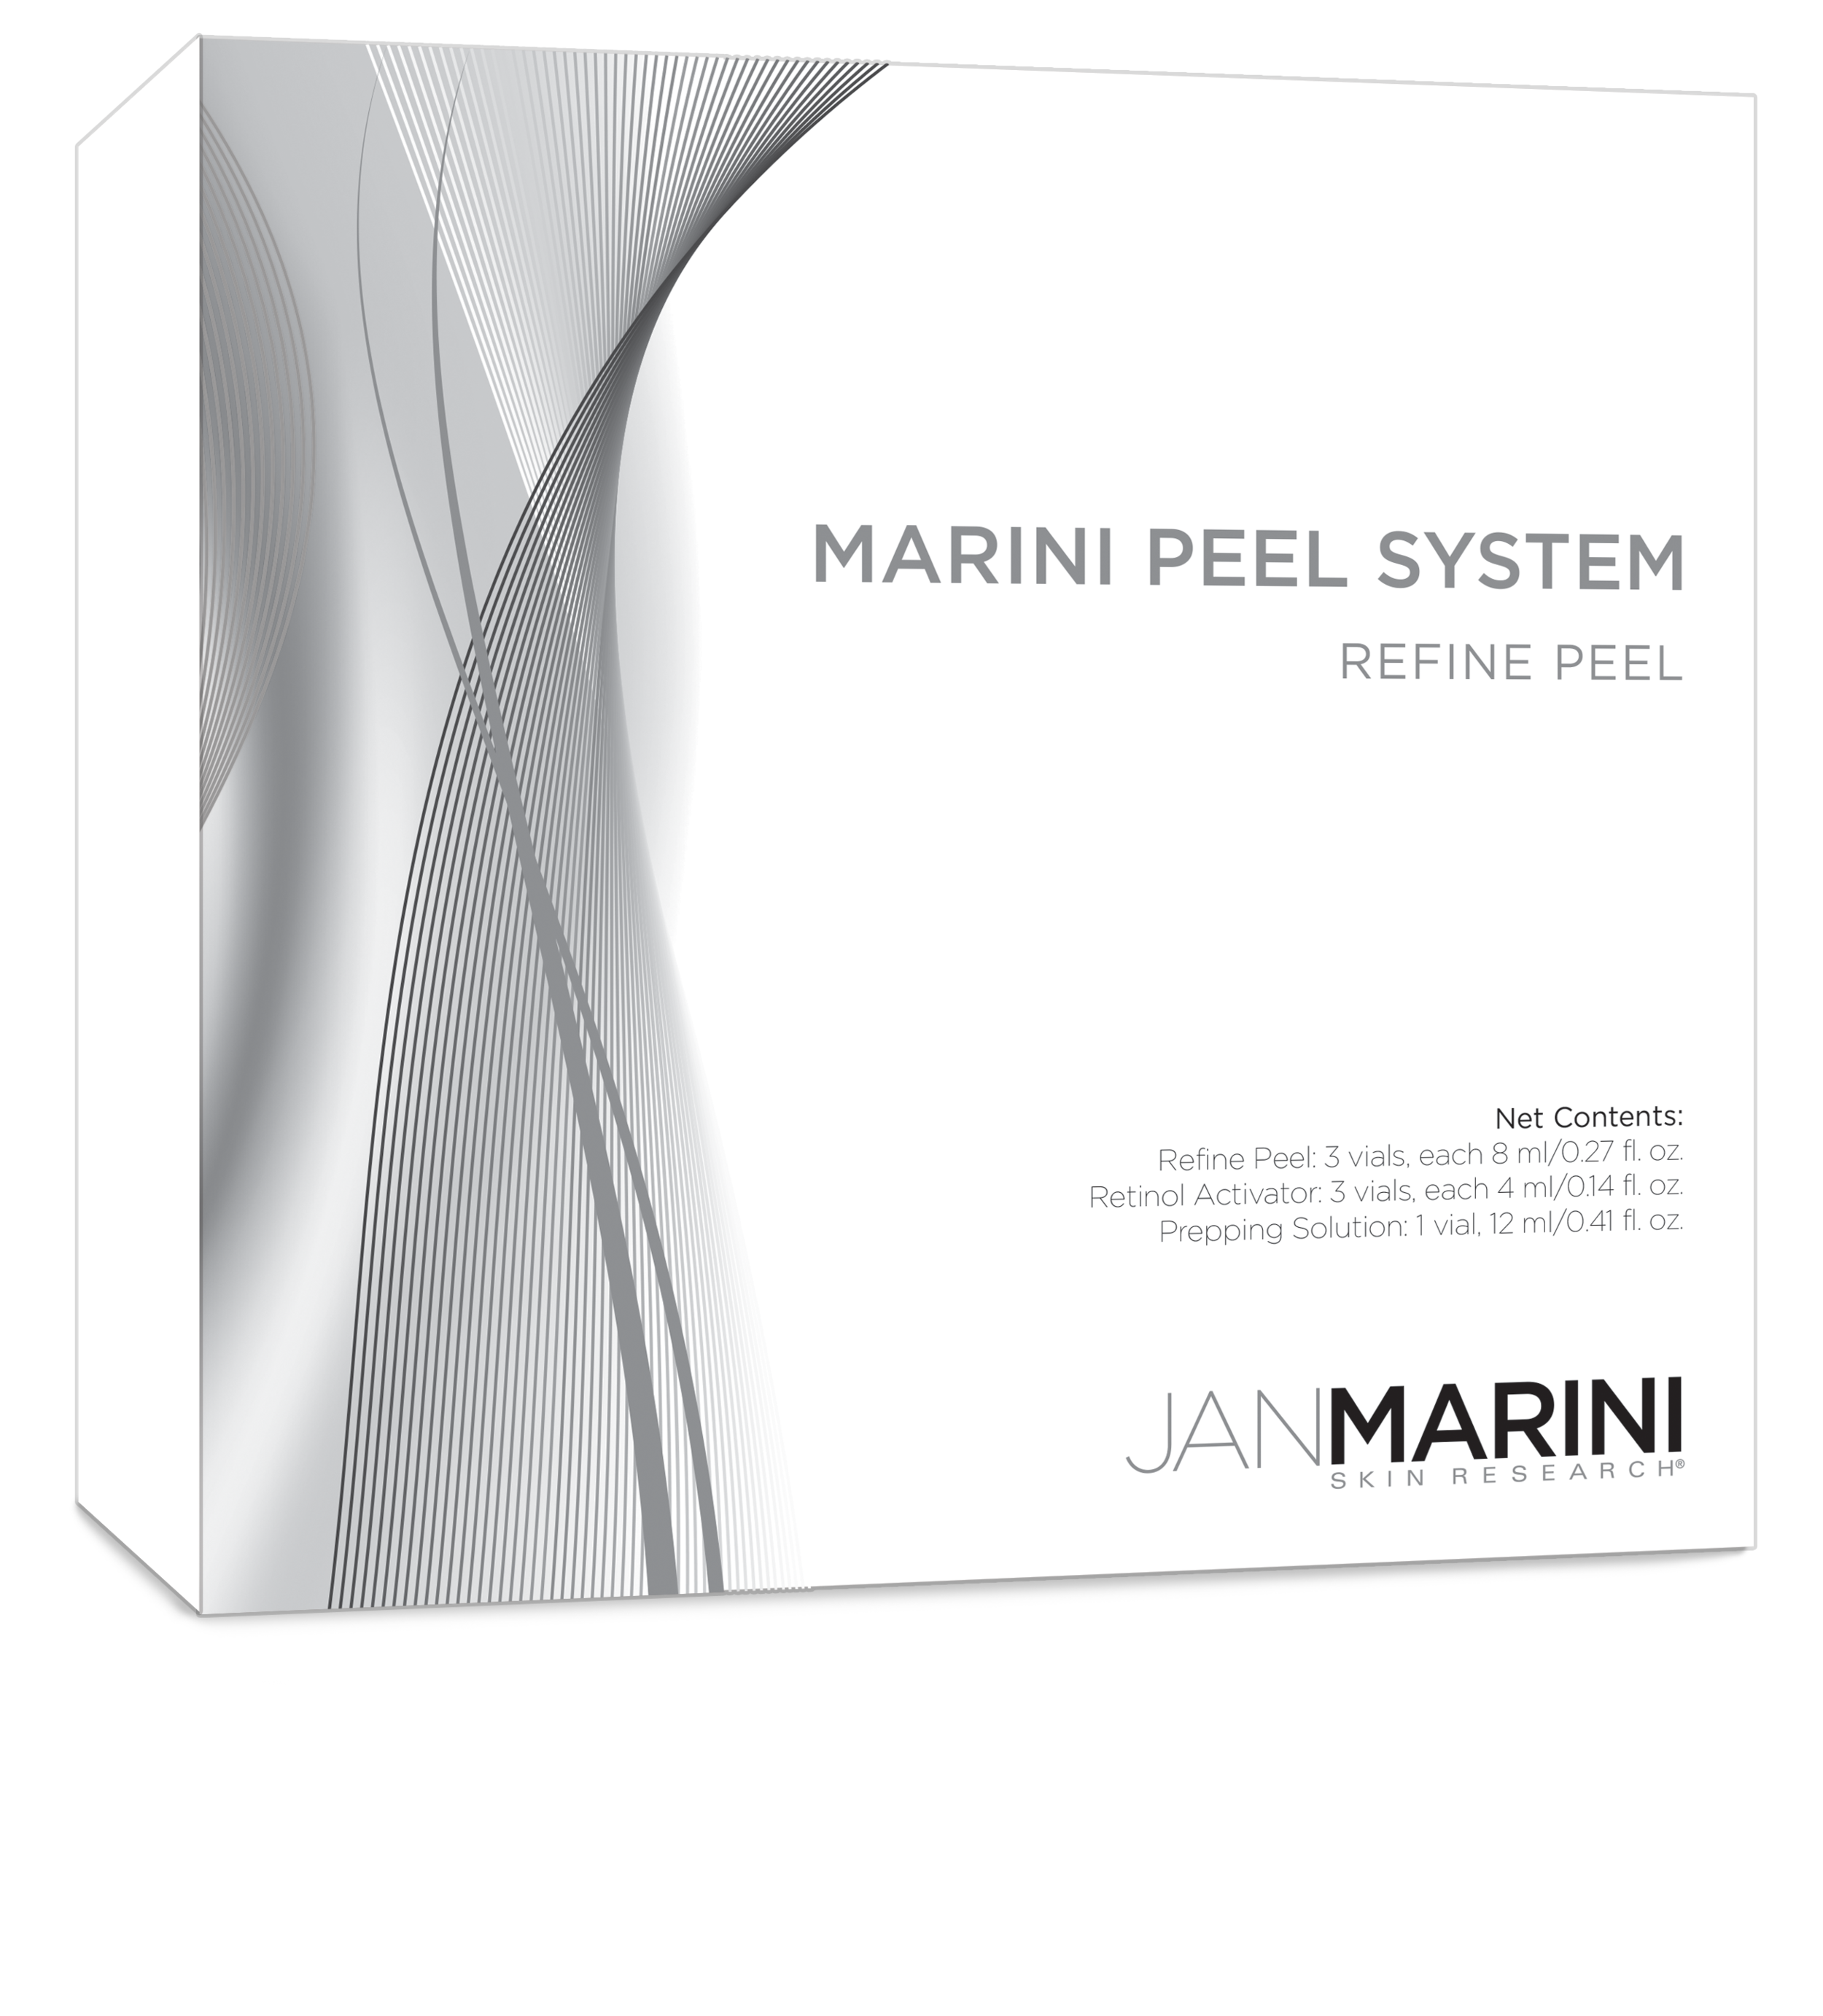 Product Images_HiRes_Marini_Peel_System_Refine_Box_HiRes.png